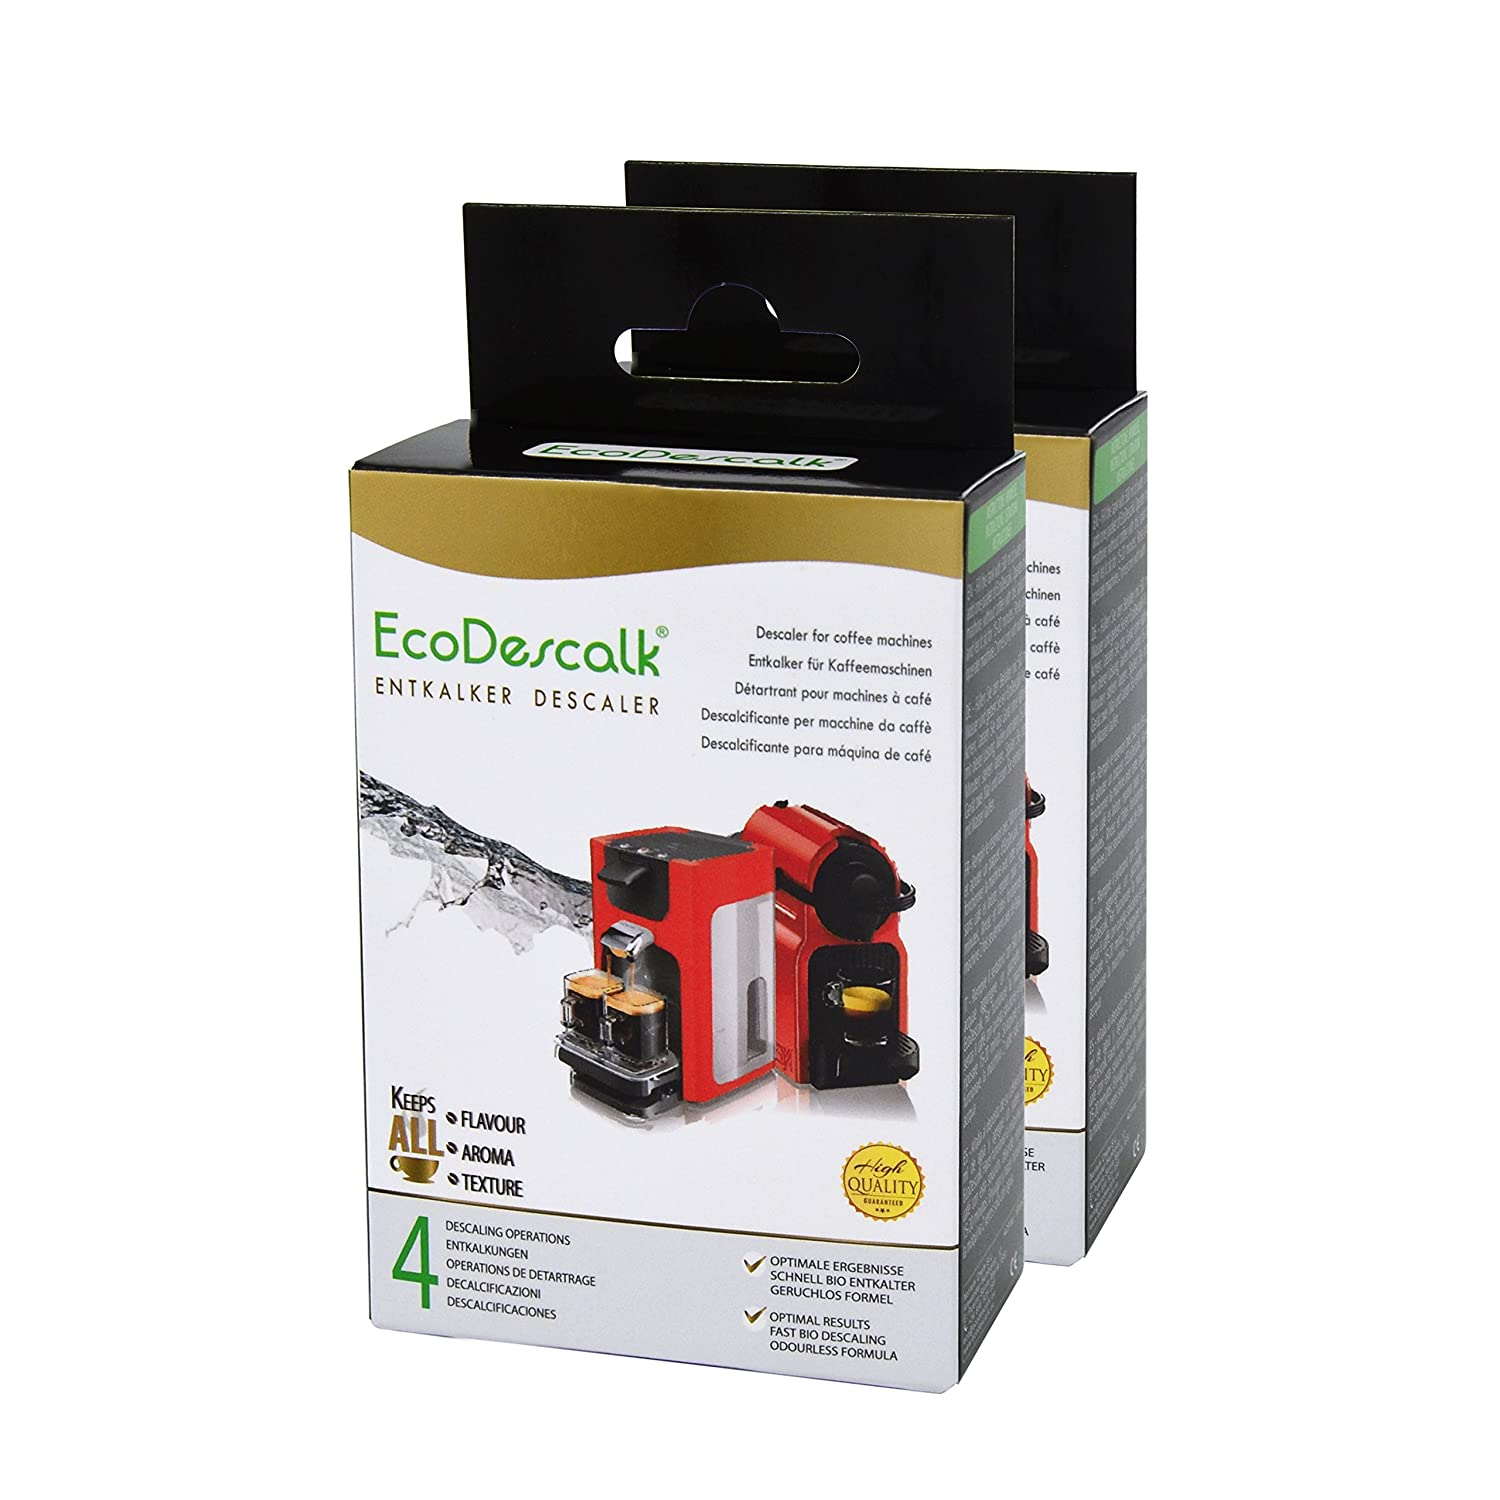 EcoDescalk, 4 Sachets. Powder Descaler and Cleaner for Coffee Machines. Fast-Acting Limescale Remover. All Brands (Bosch, DeLonghi, Krups, Nespresso, Tassimo, Senseo…). 4 Decalcifications. Developed in UK. Nortem Biotechnology